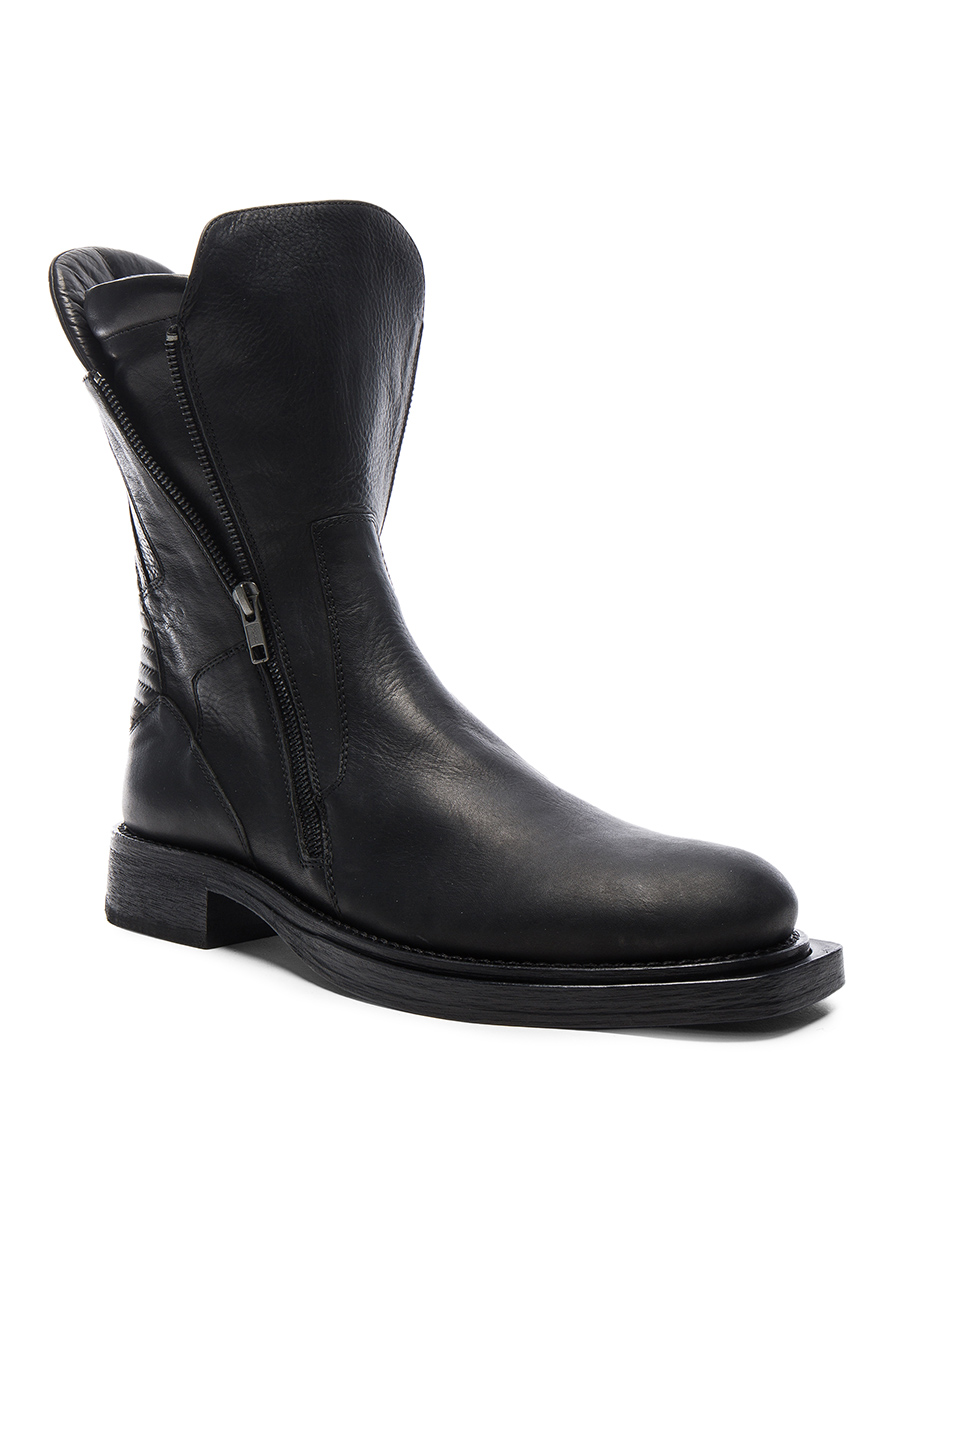 Ann Demeulemeester Leather Moto Boots in Black